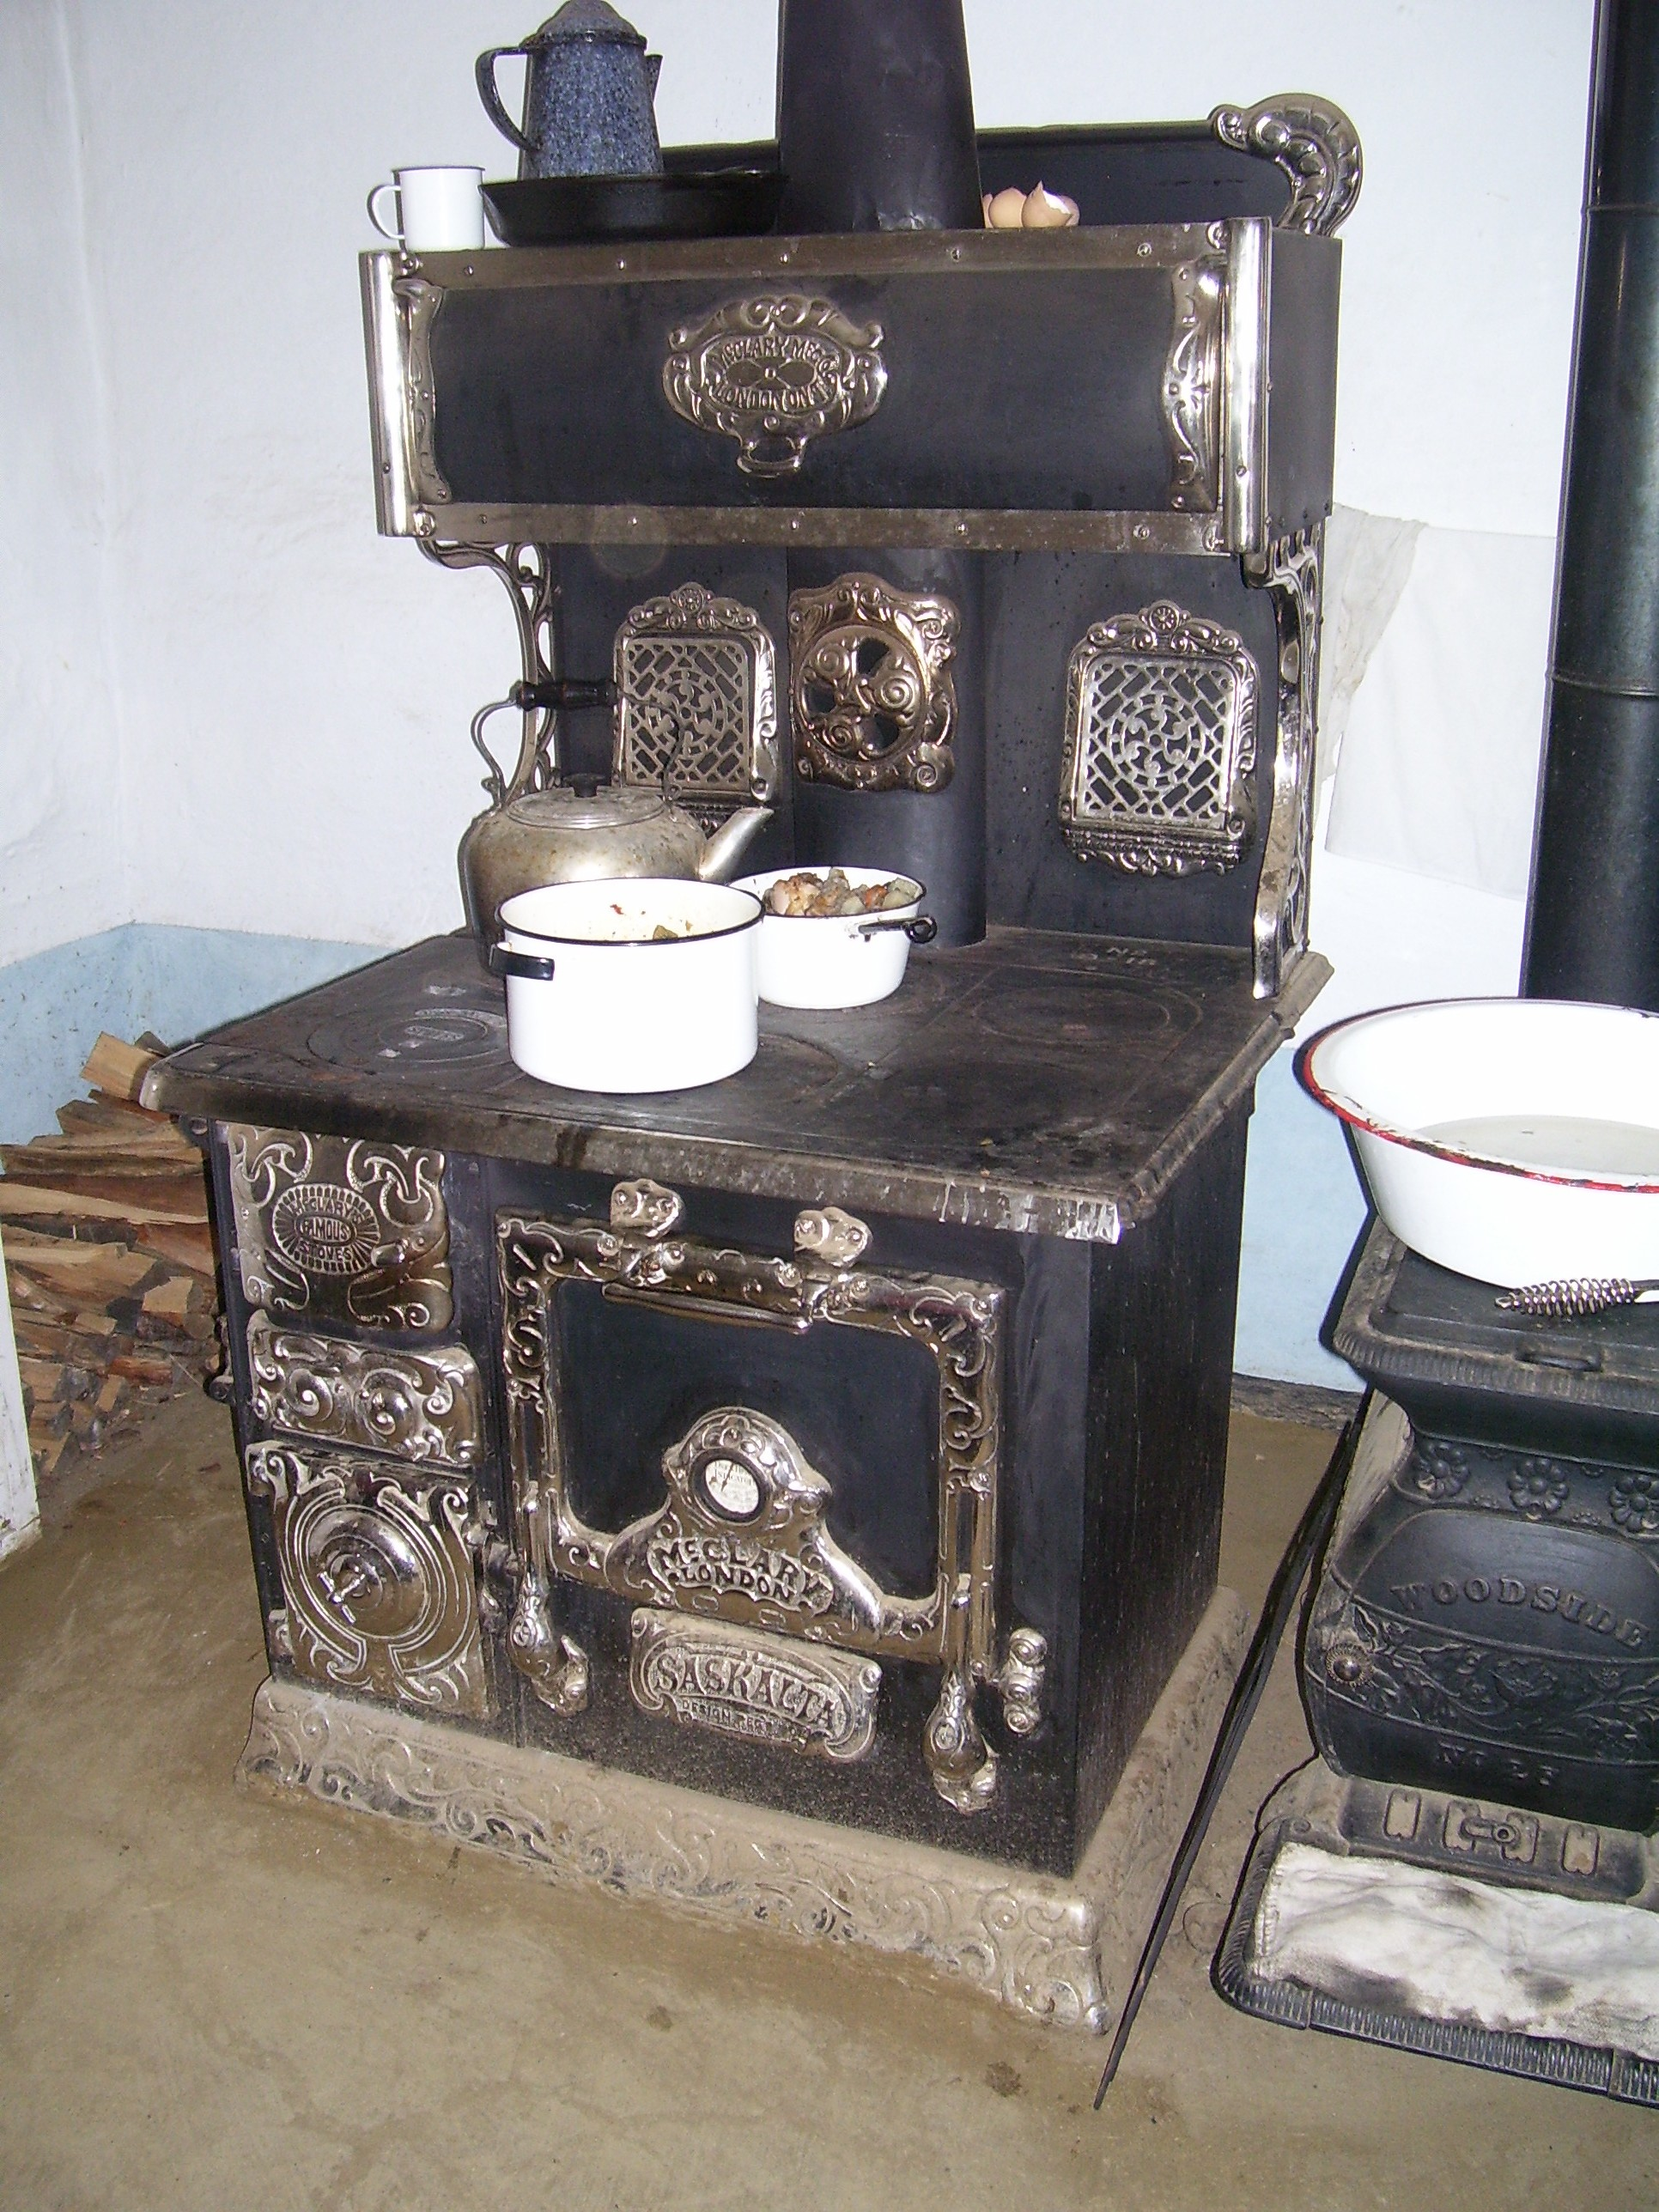 Wood Stove With Oven Photos